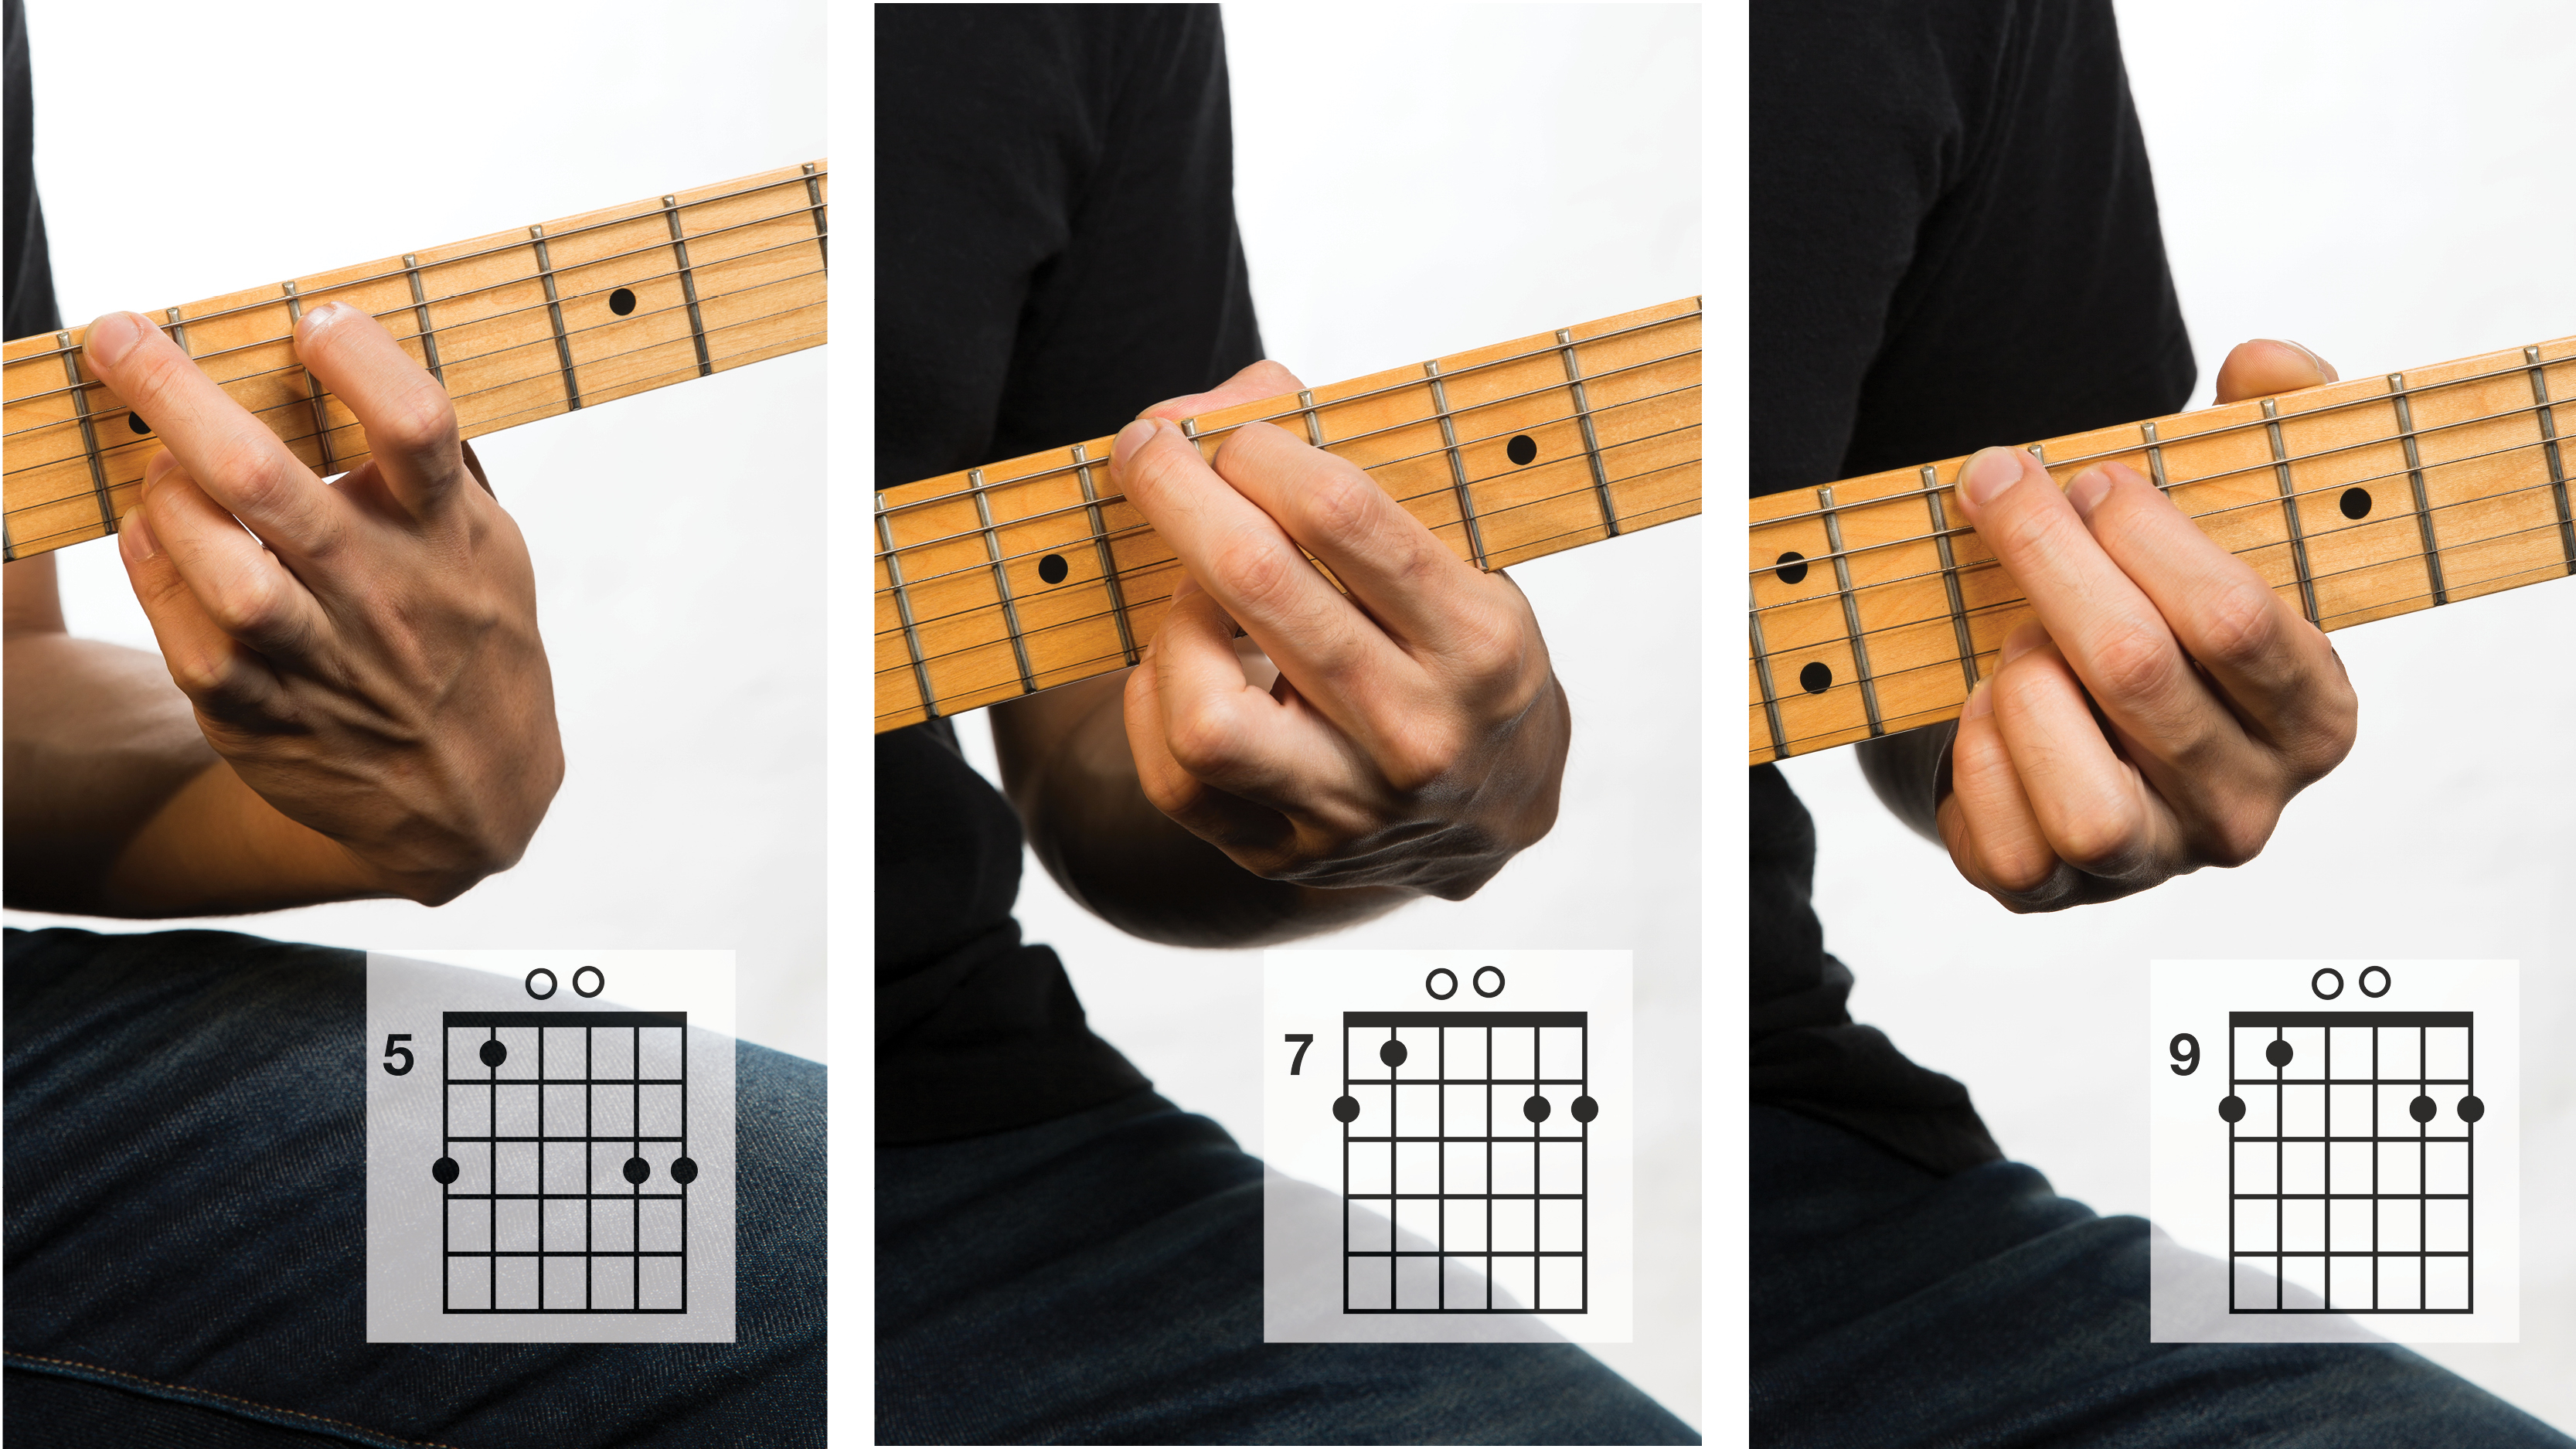 B Minor Guitar Chord Beginner Music Theory Learn The Five Essential Chord Shapes